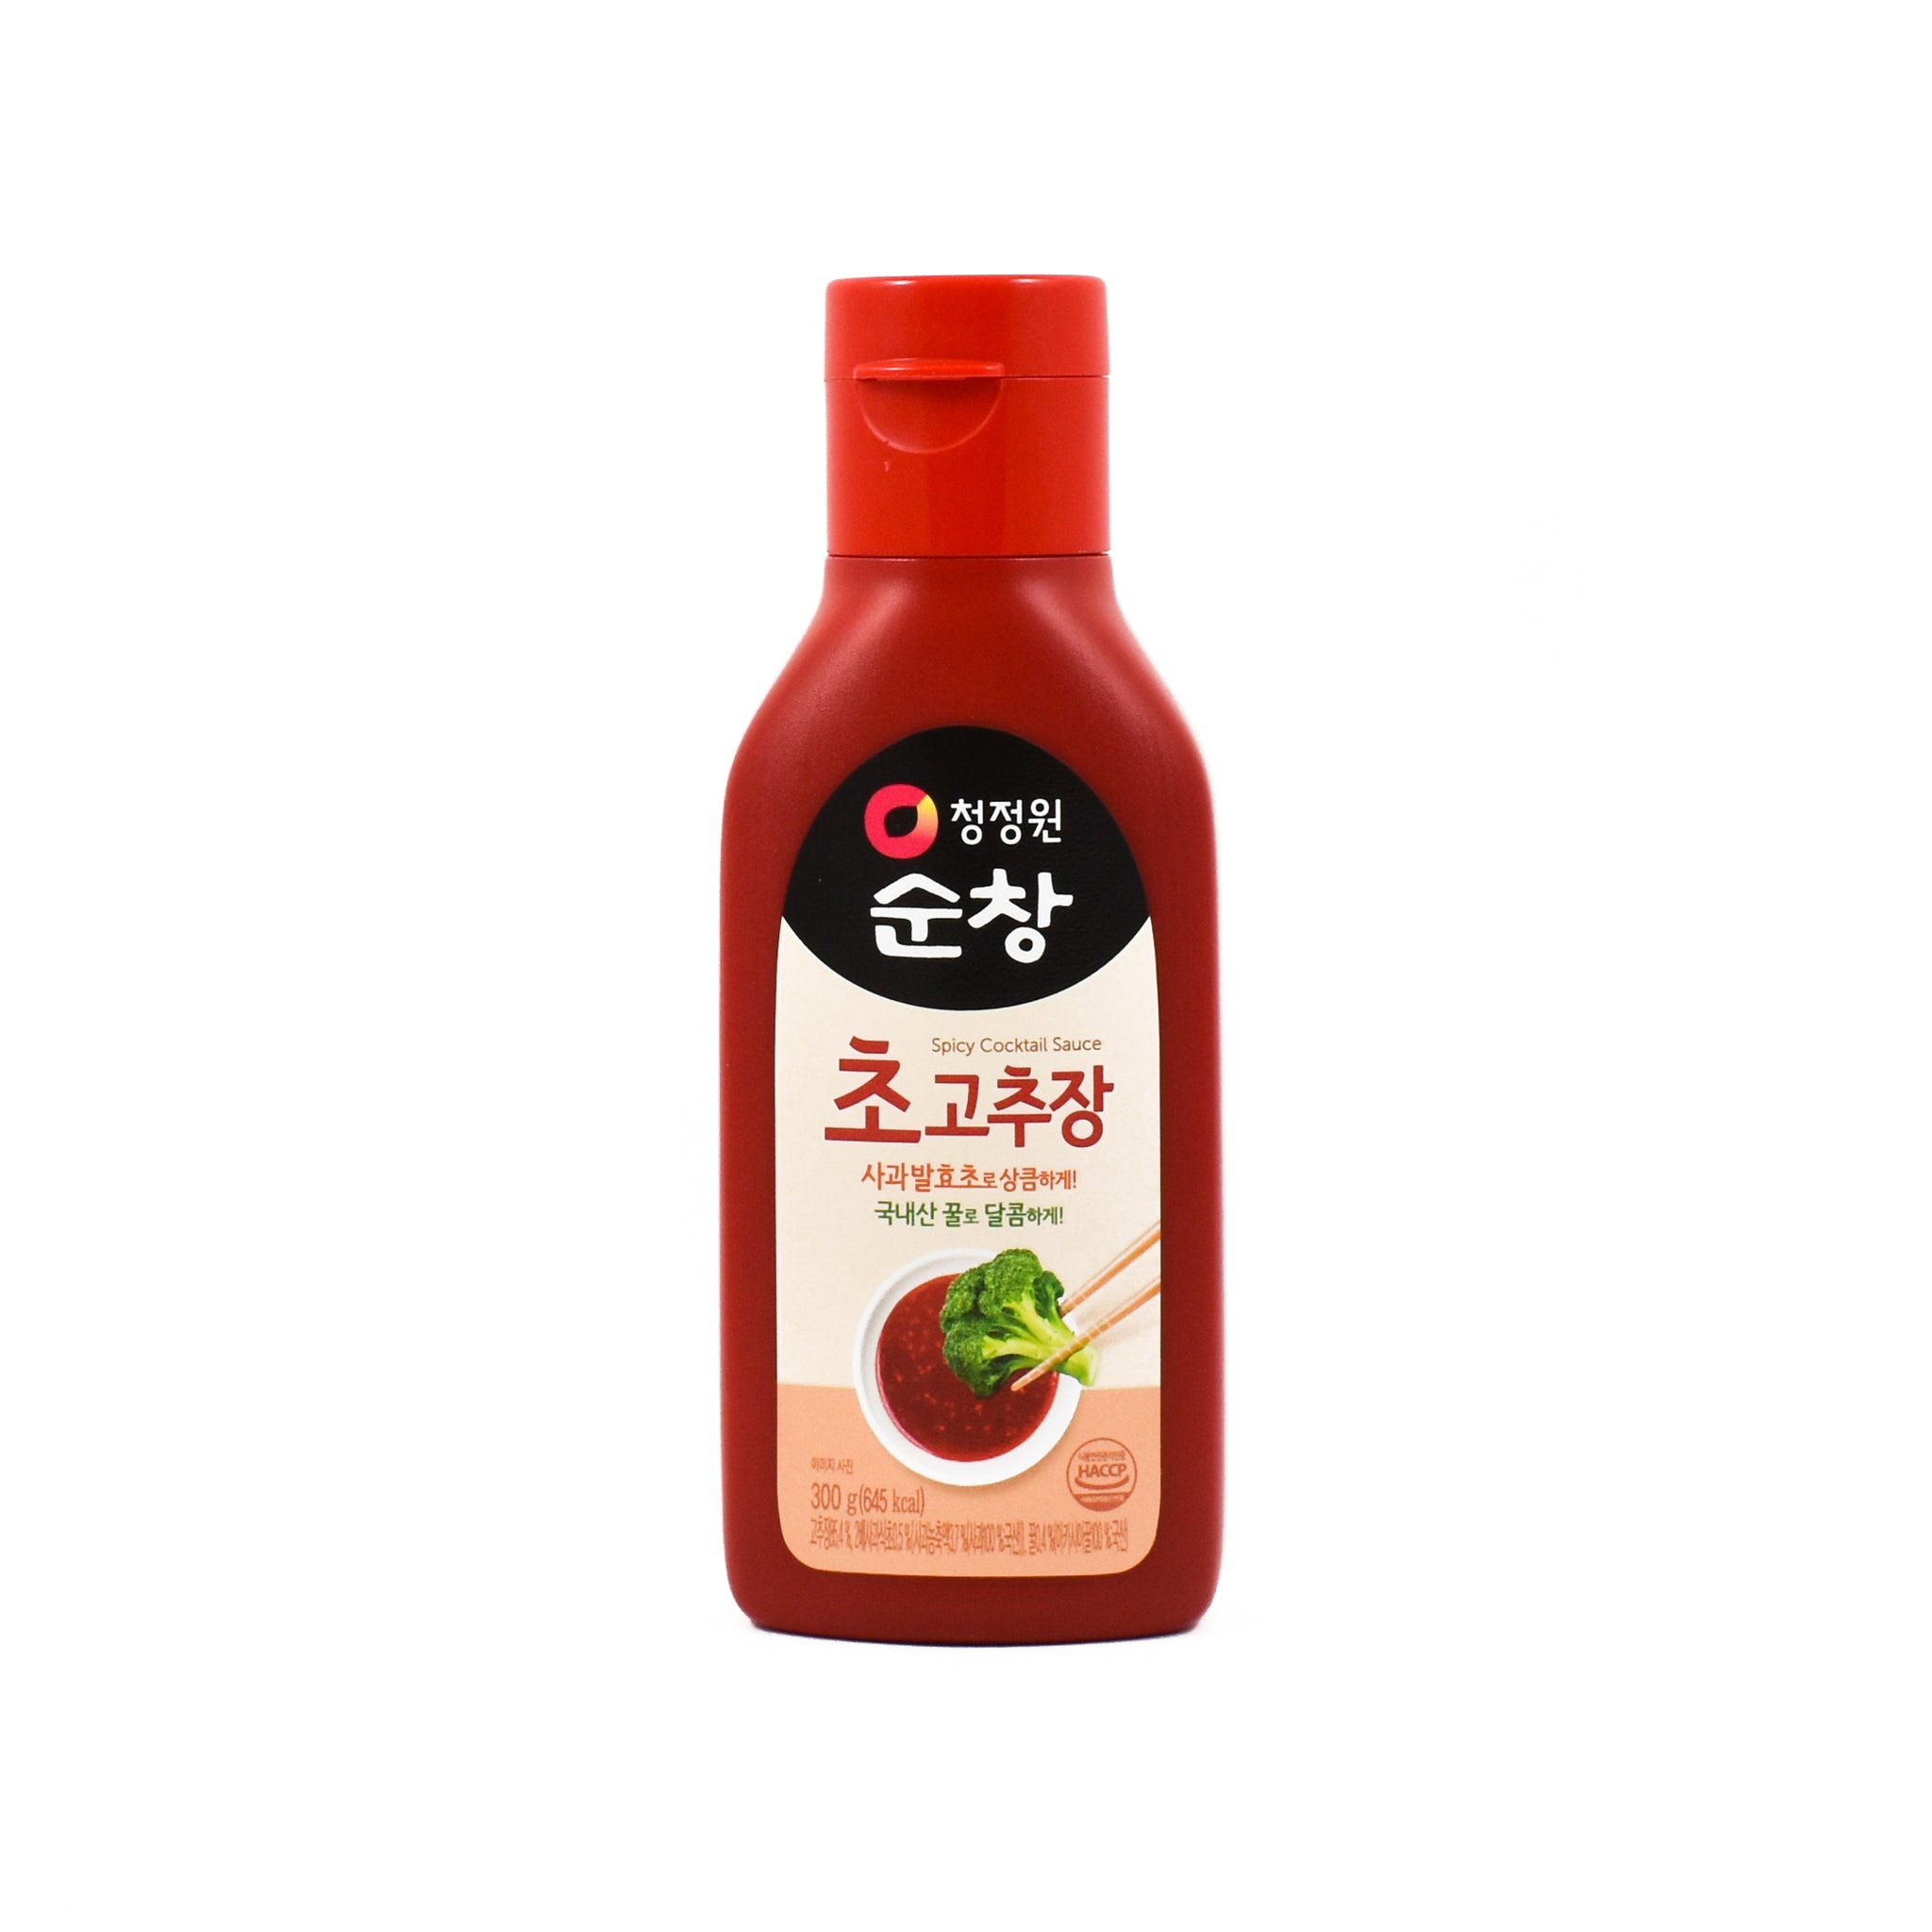 Haechandle Vinegared Gochujang 300g Ingredients Oils & Vinegars Korean Food